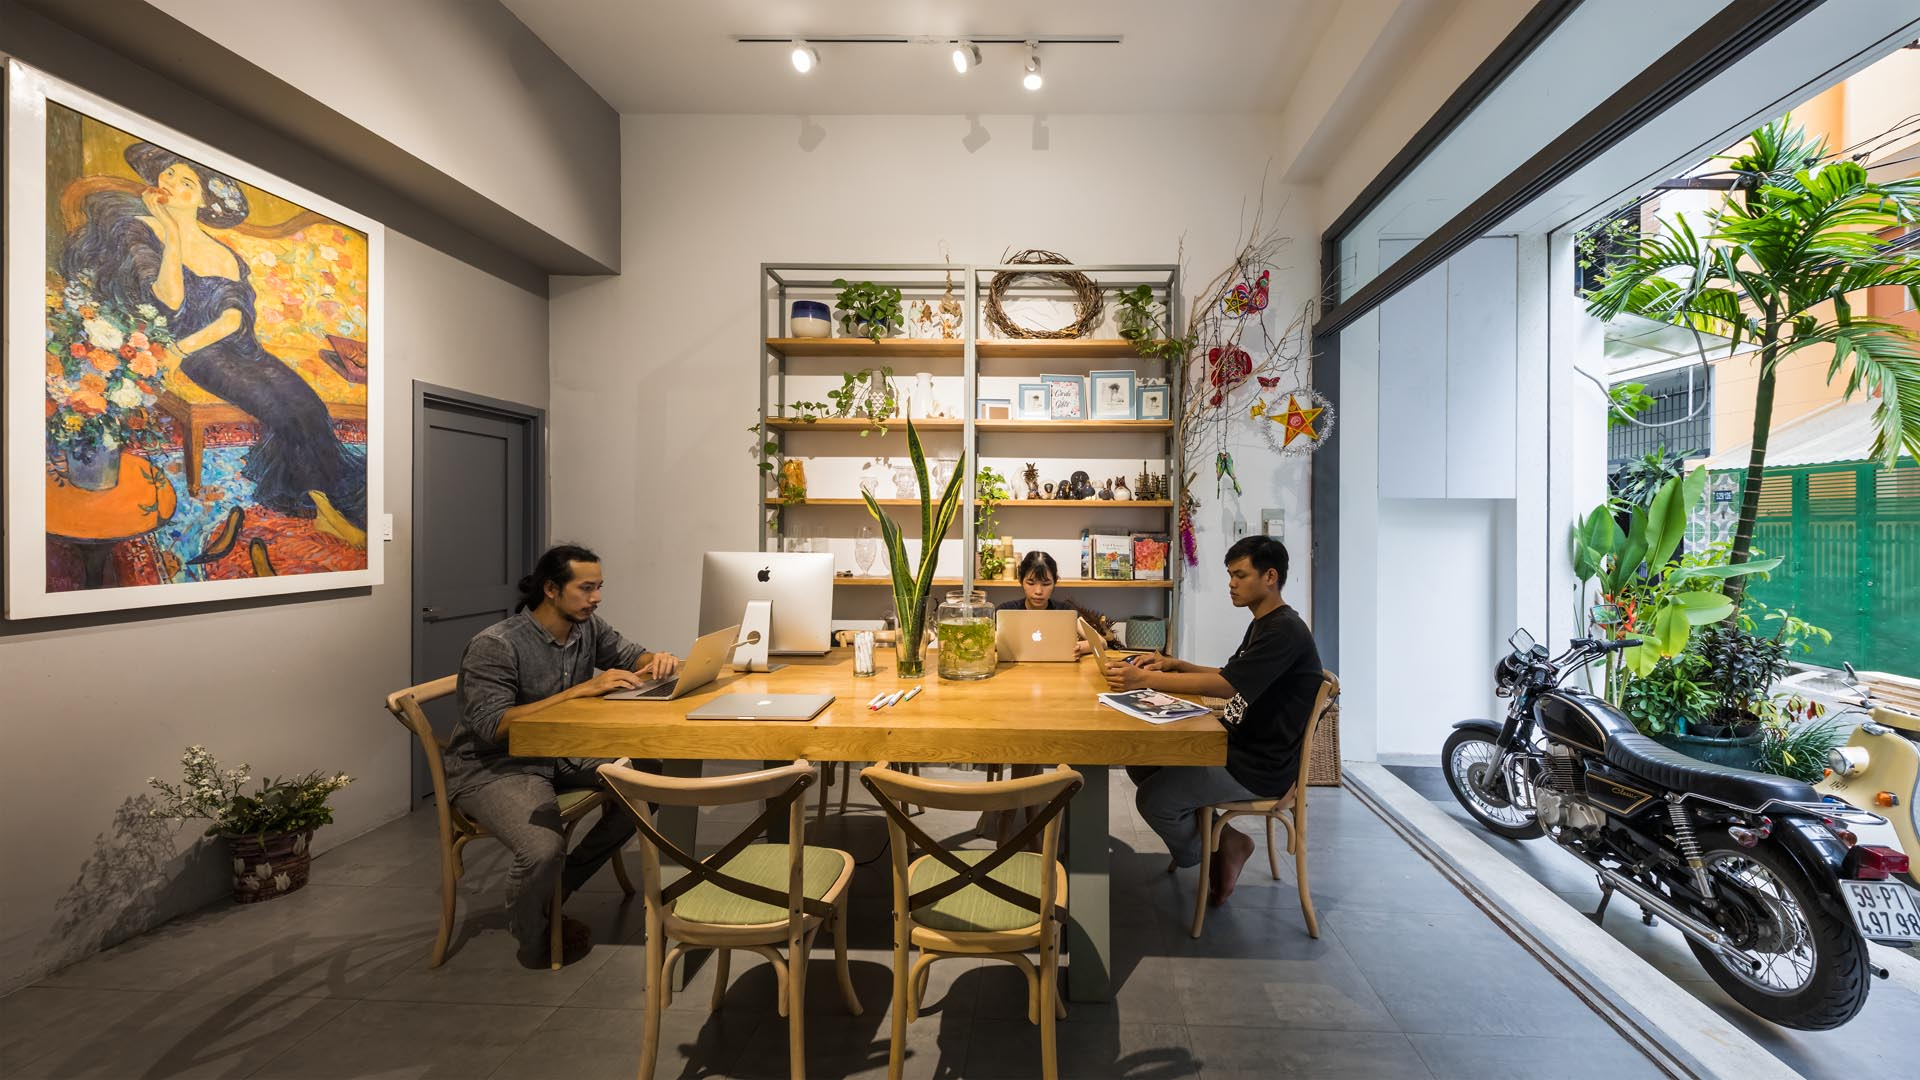 A co-working space on the ground floor of a home.